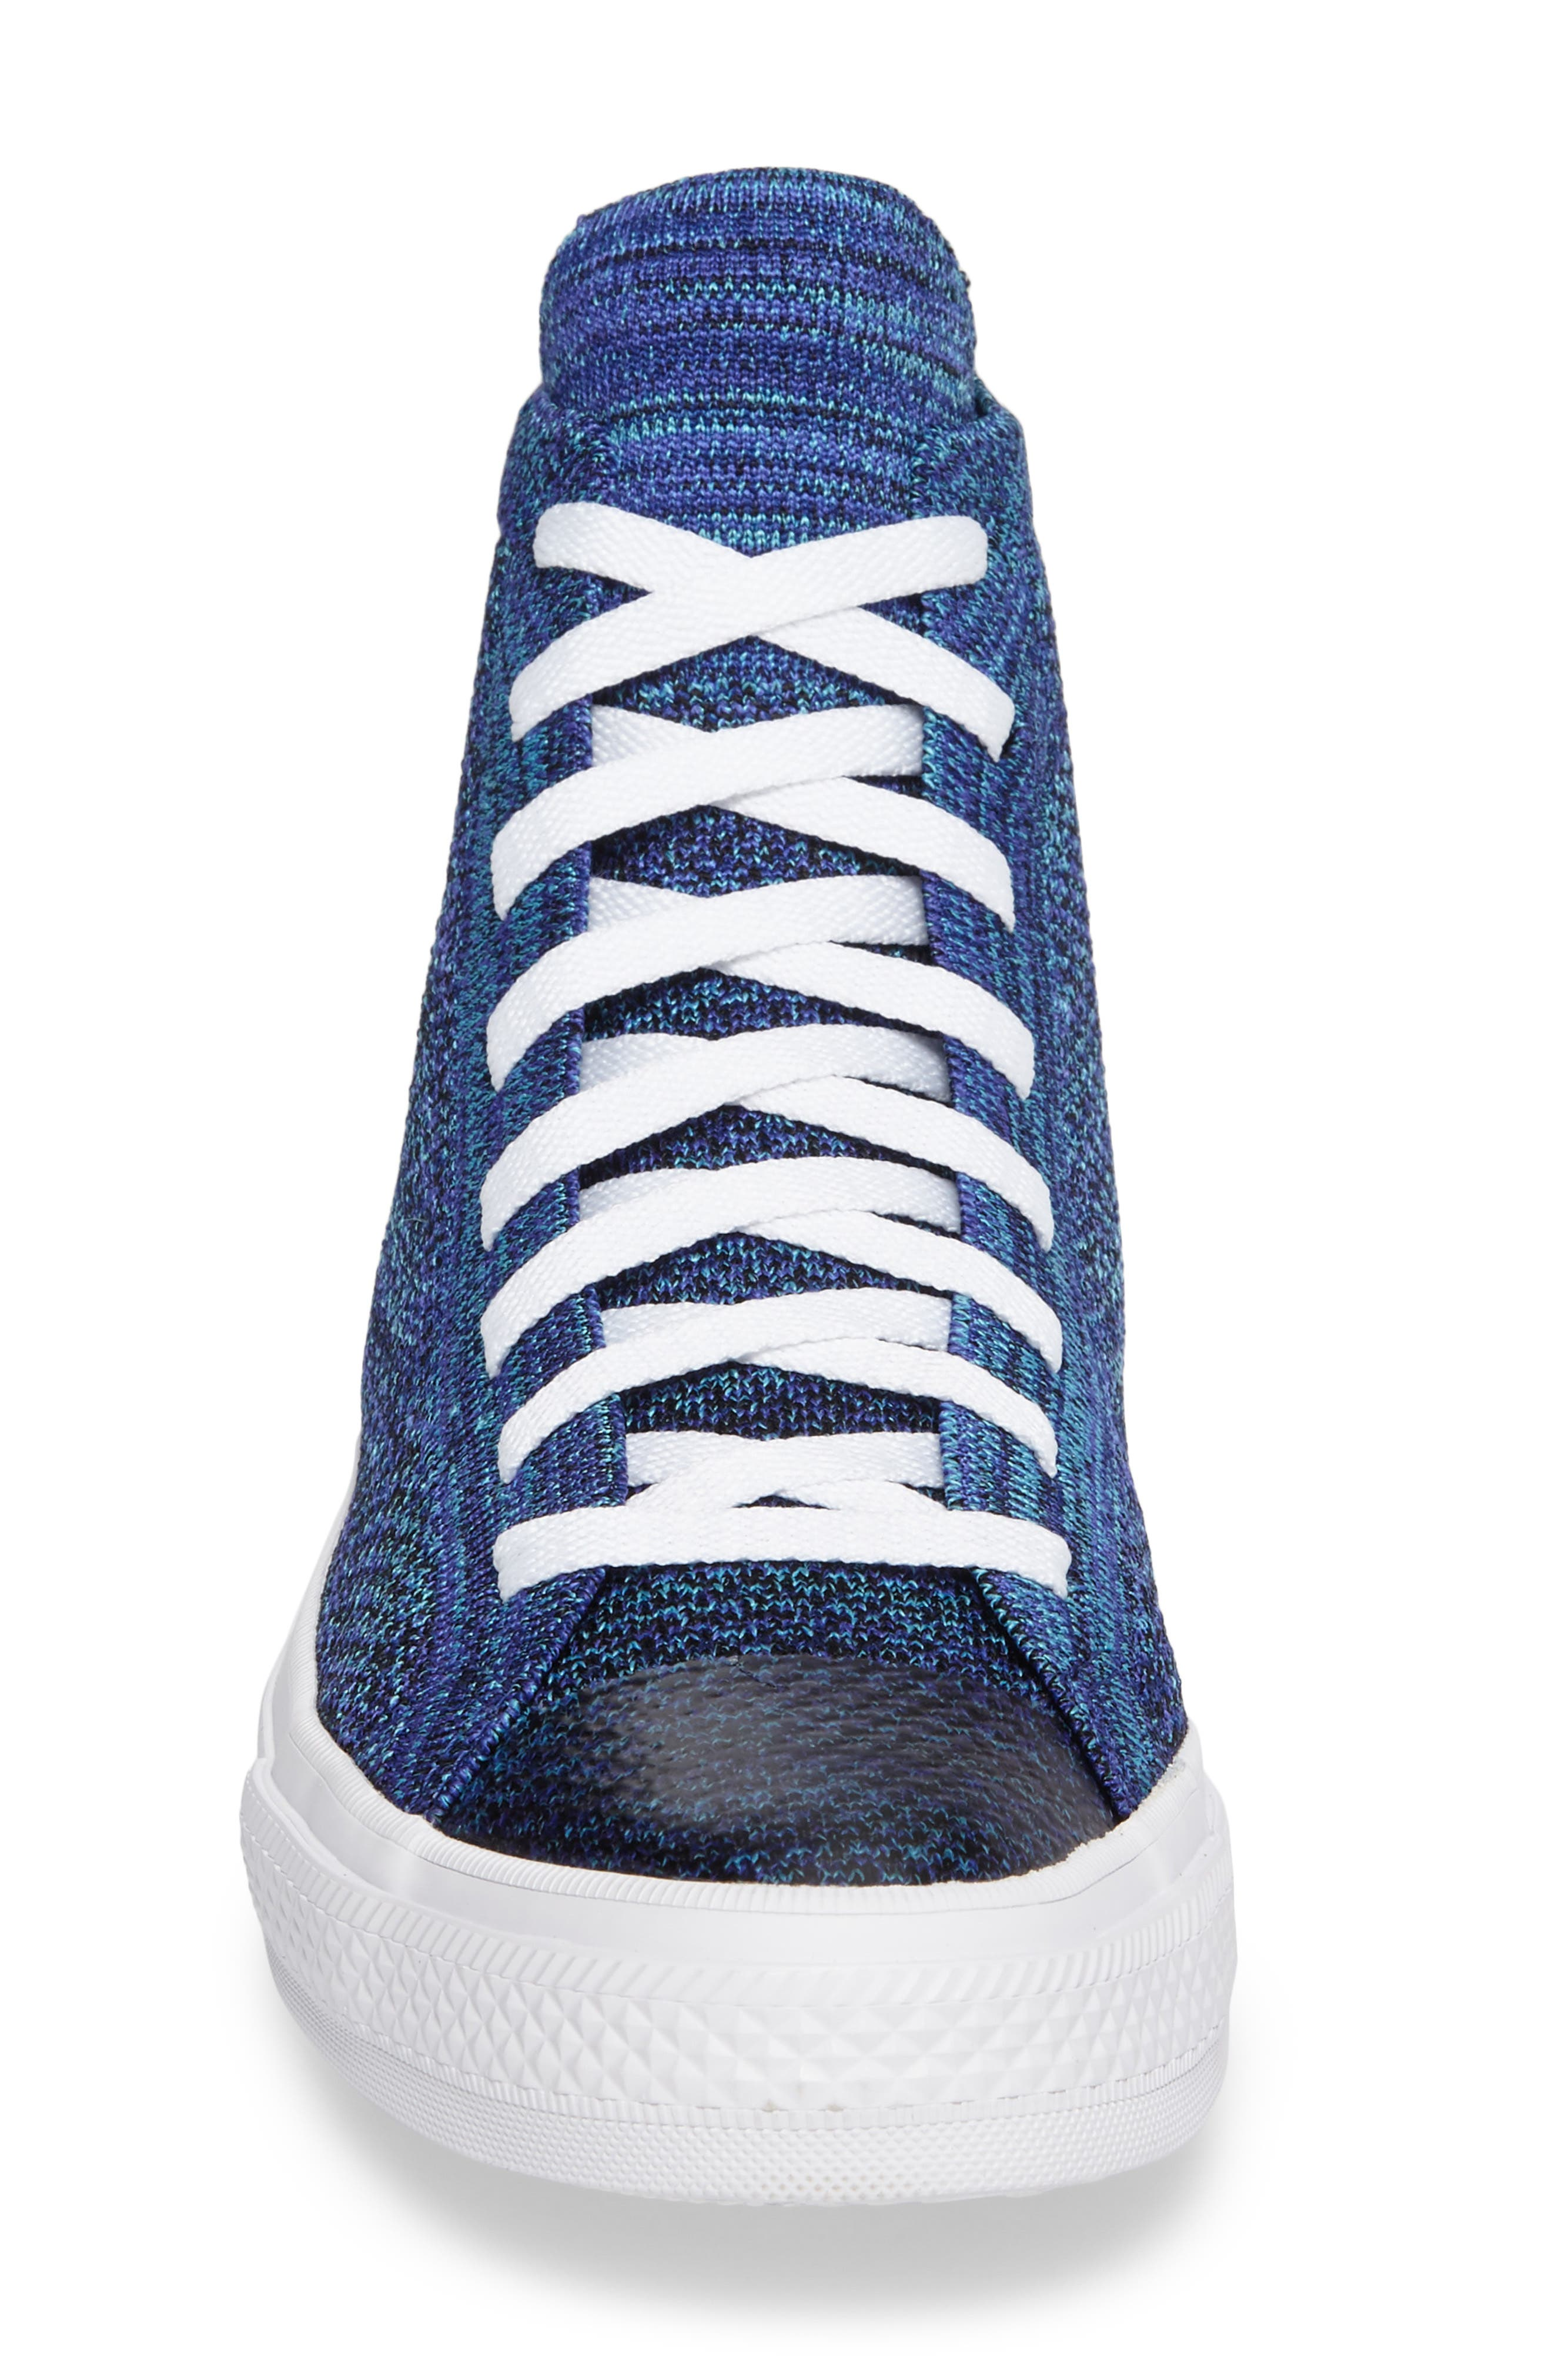 Chuck Taylor<sup>®</sup> All Star<sup>®</sup> Flyknit Hi Sneaker,                             Alternate thumbnail 24, color,